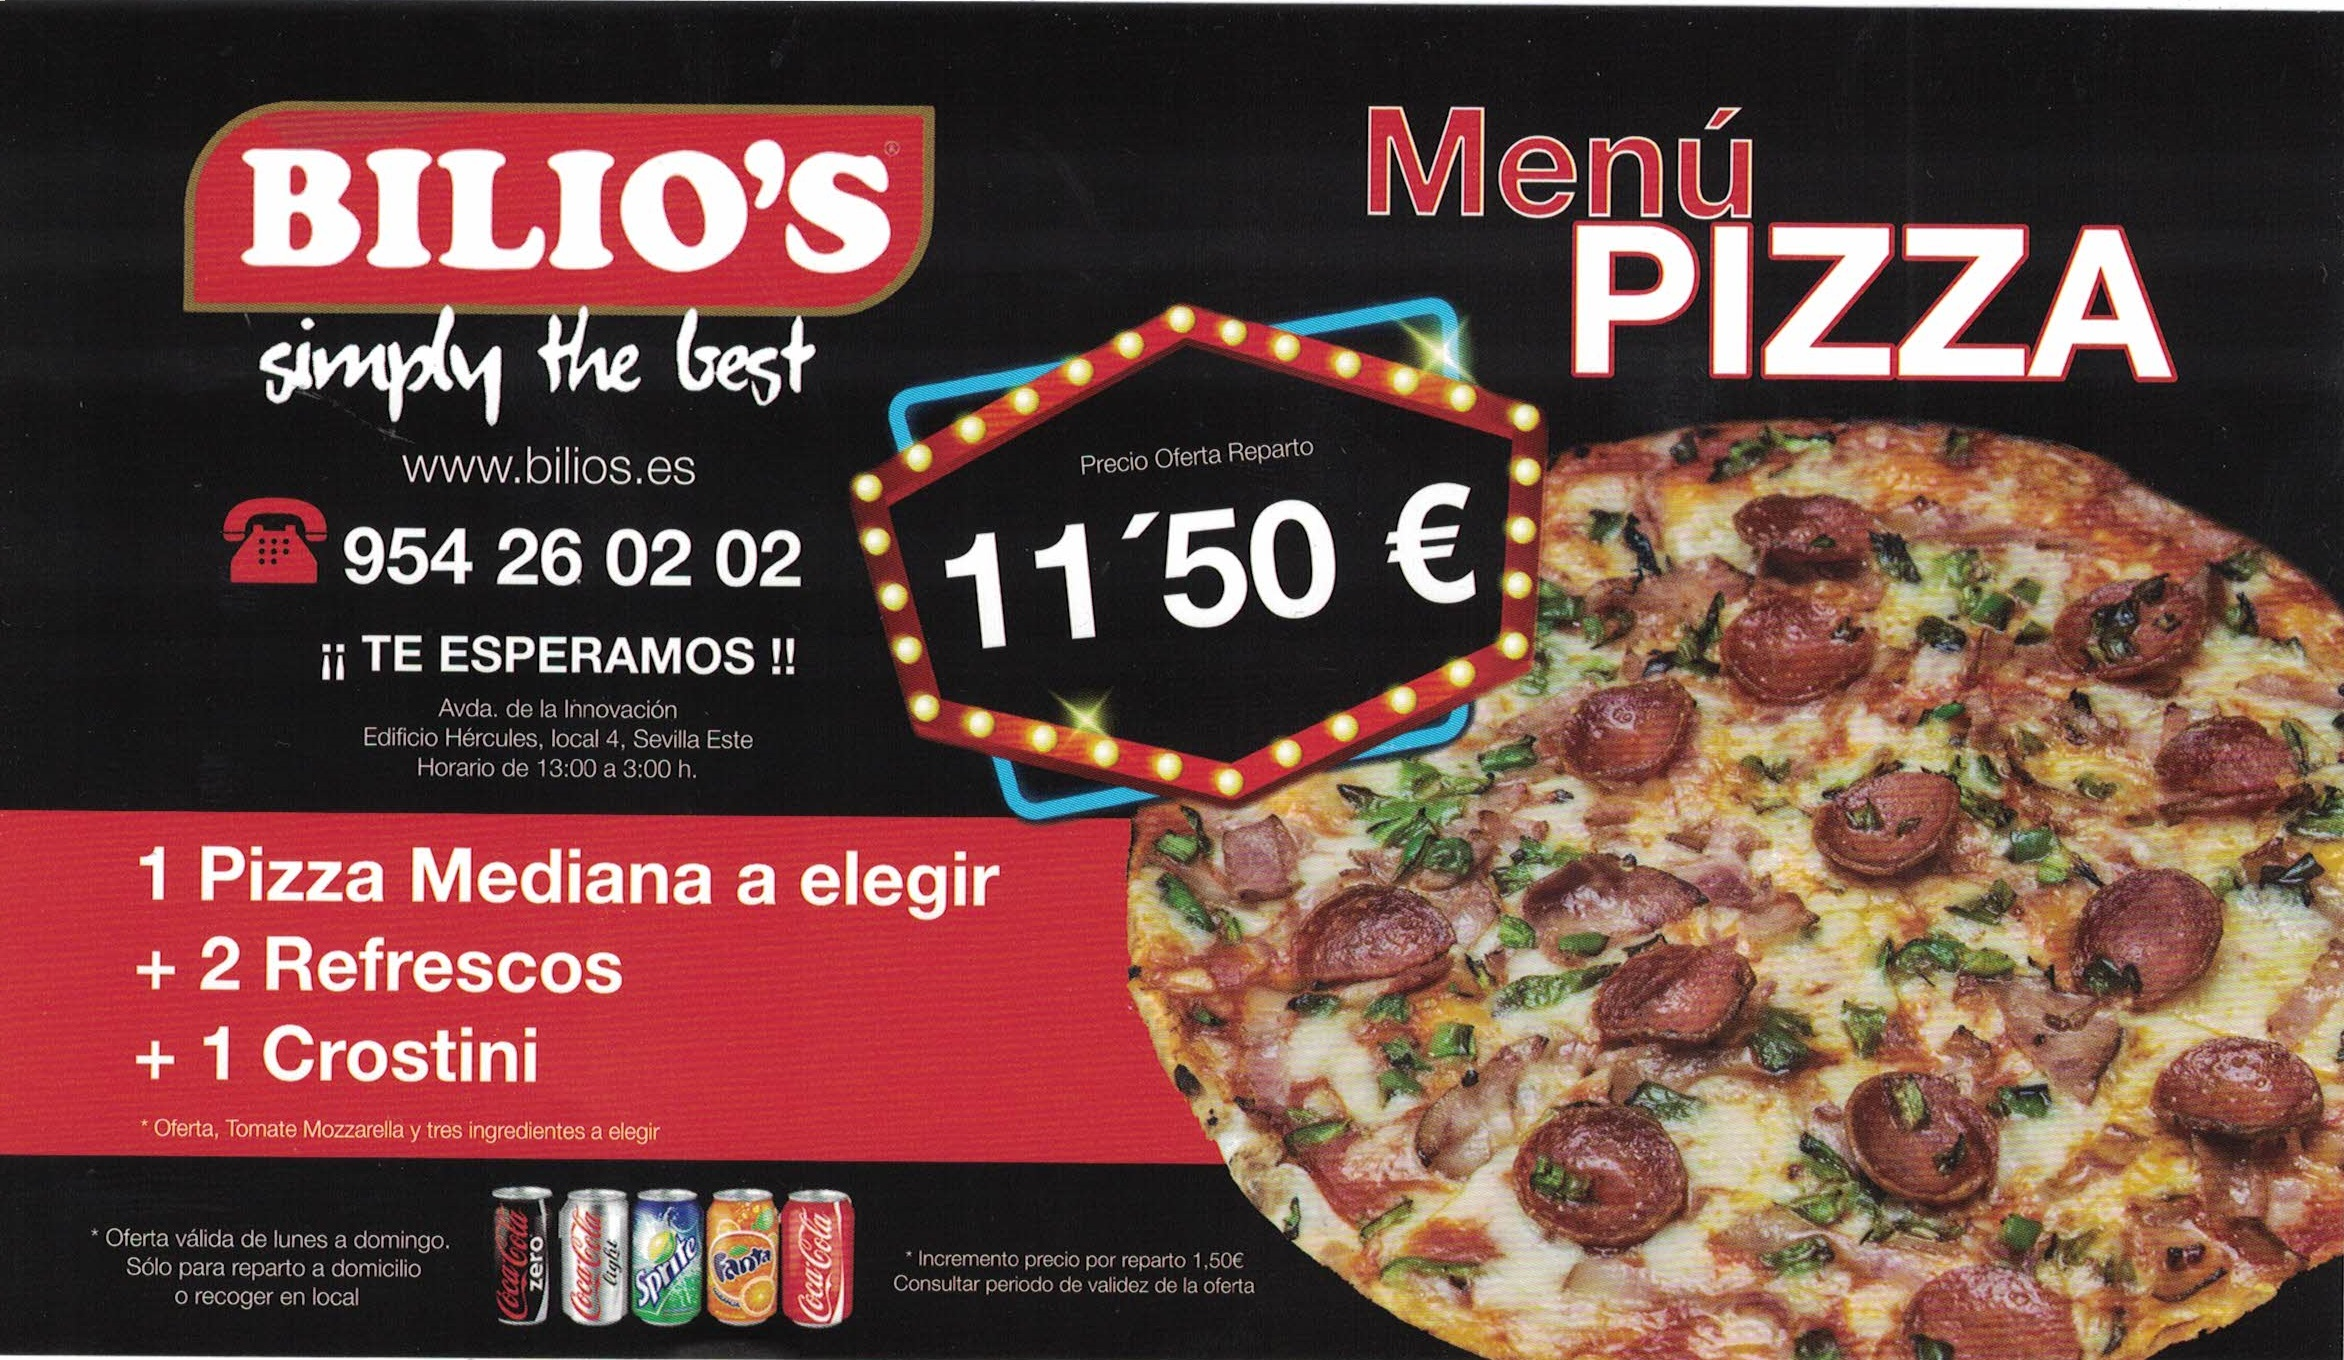 MENU PIZZA 11,50